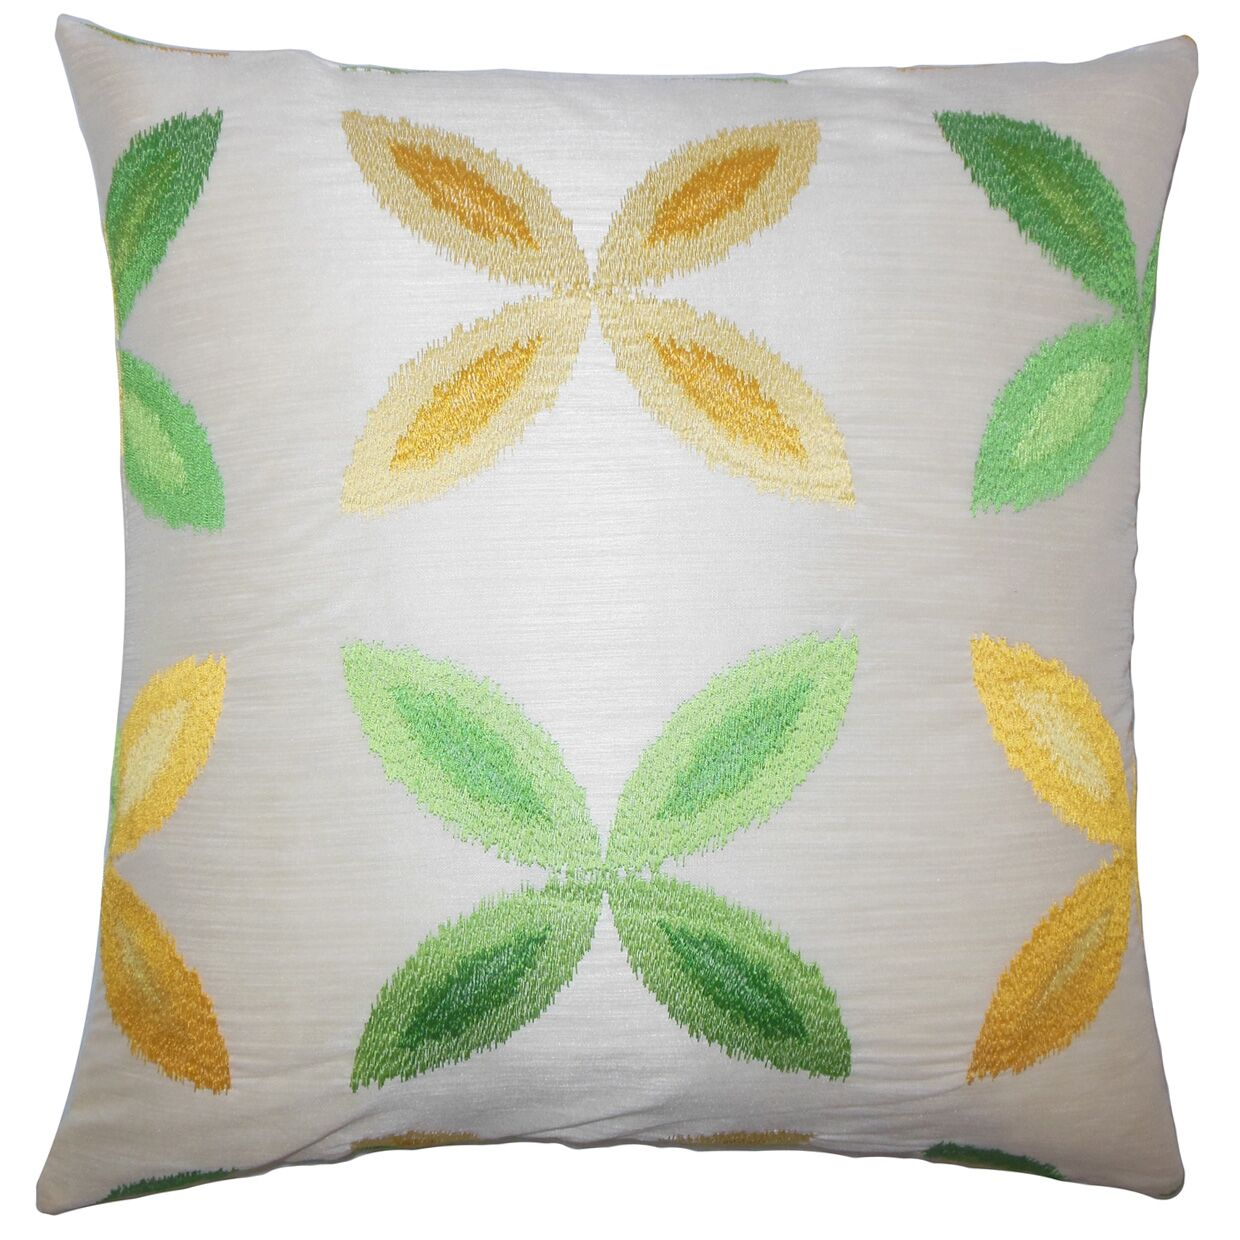 Syshe Ikat Bedding Sham Size: Euro, Color: Yellow Sage